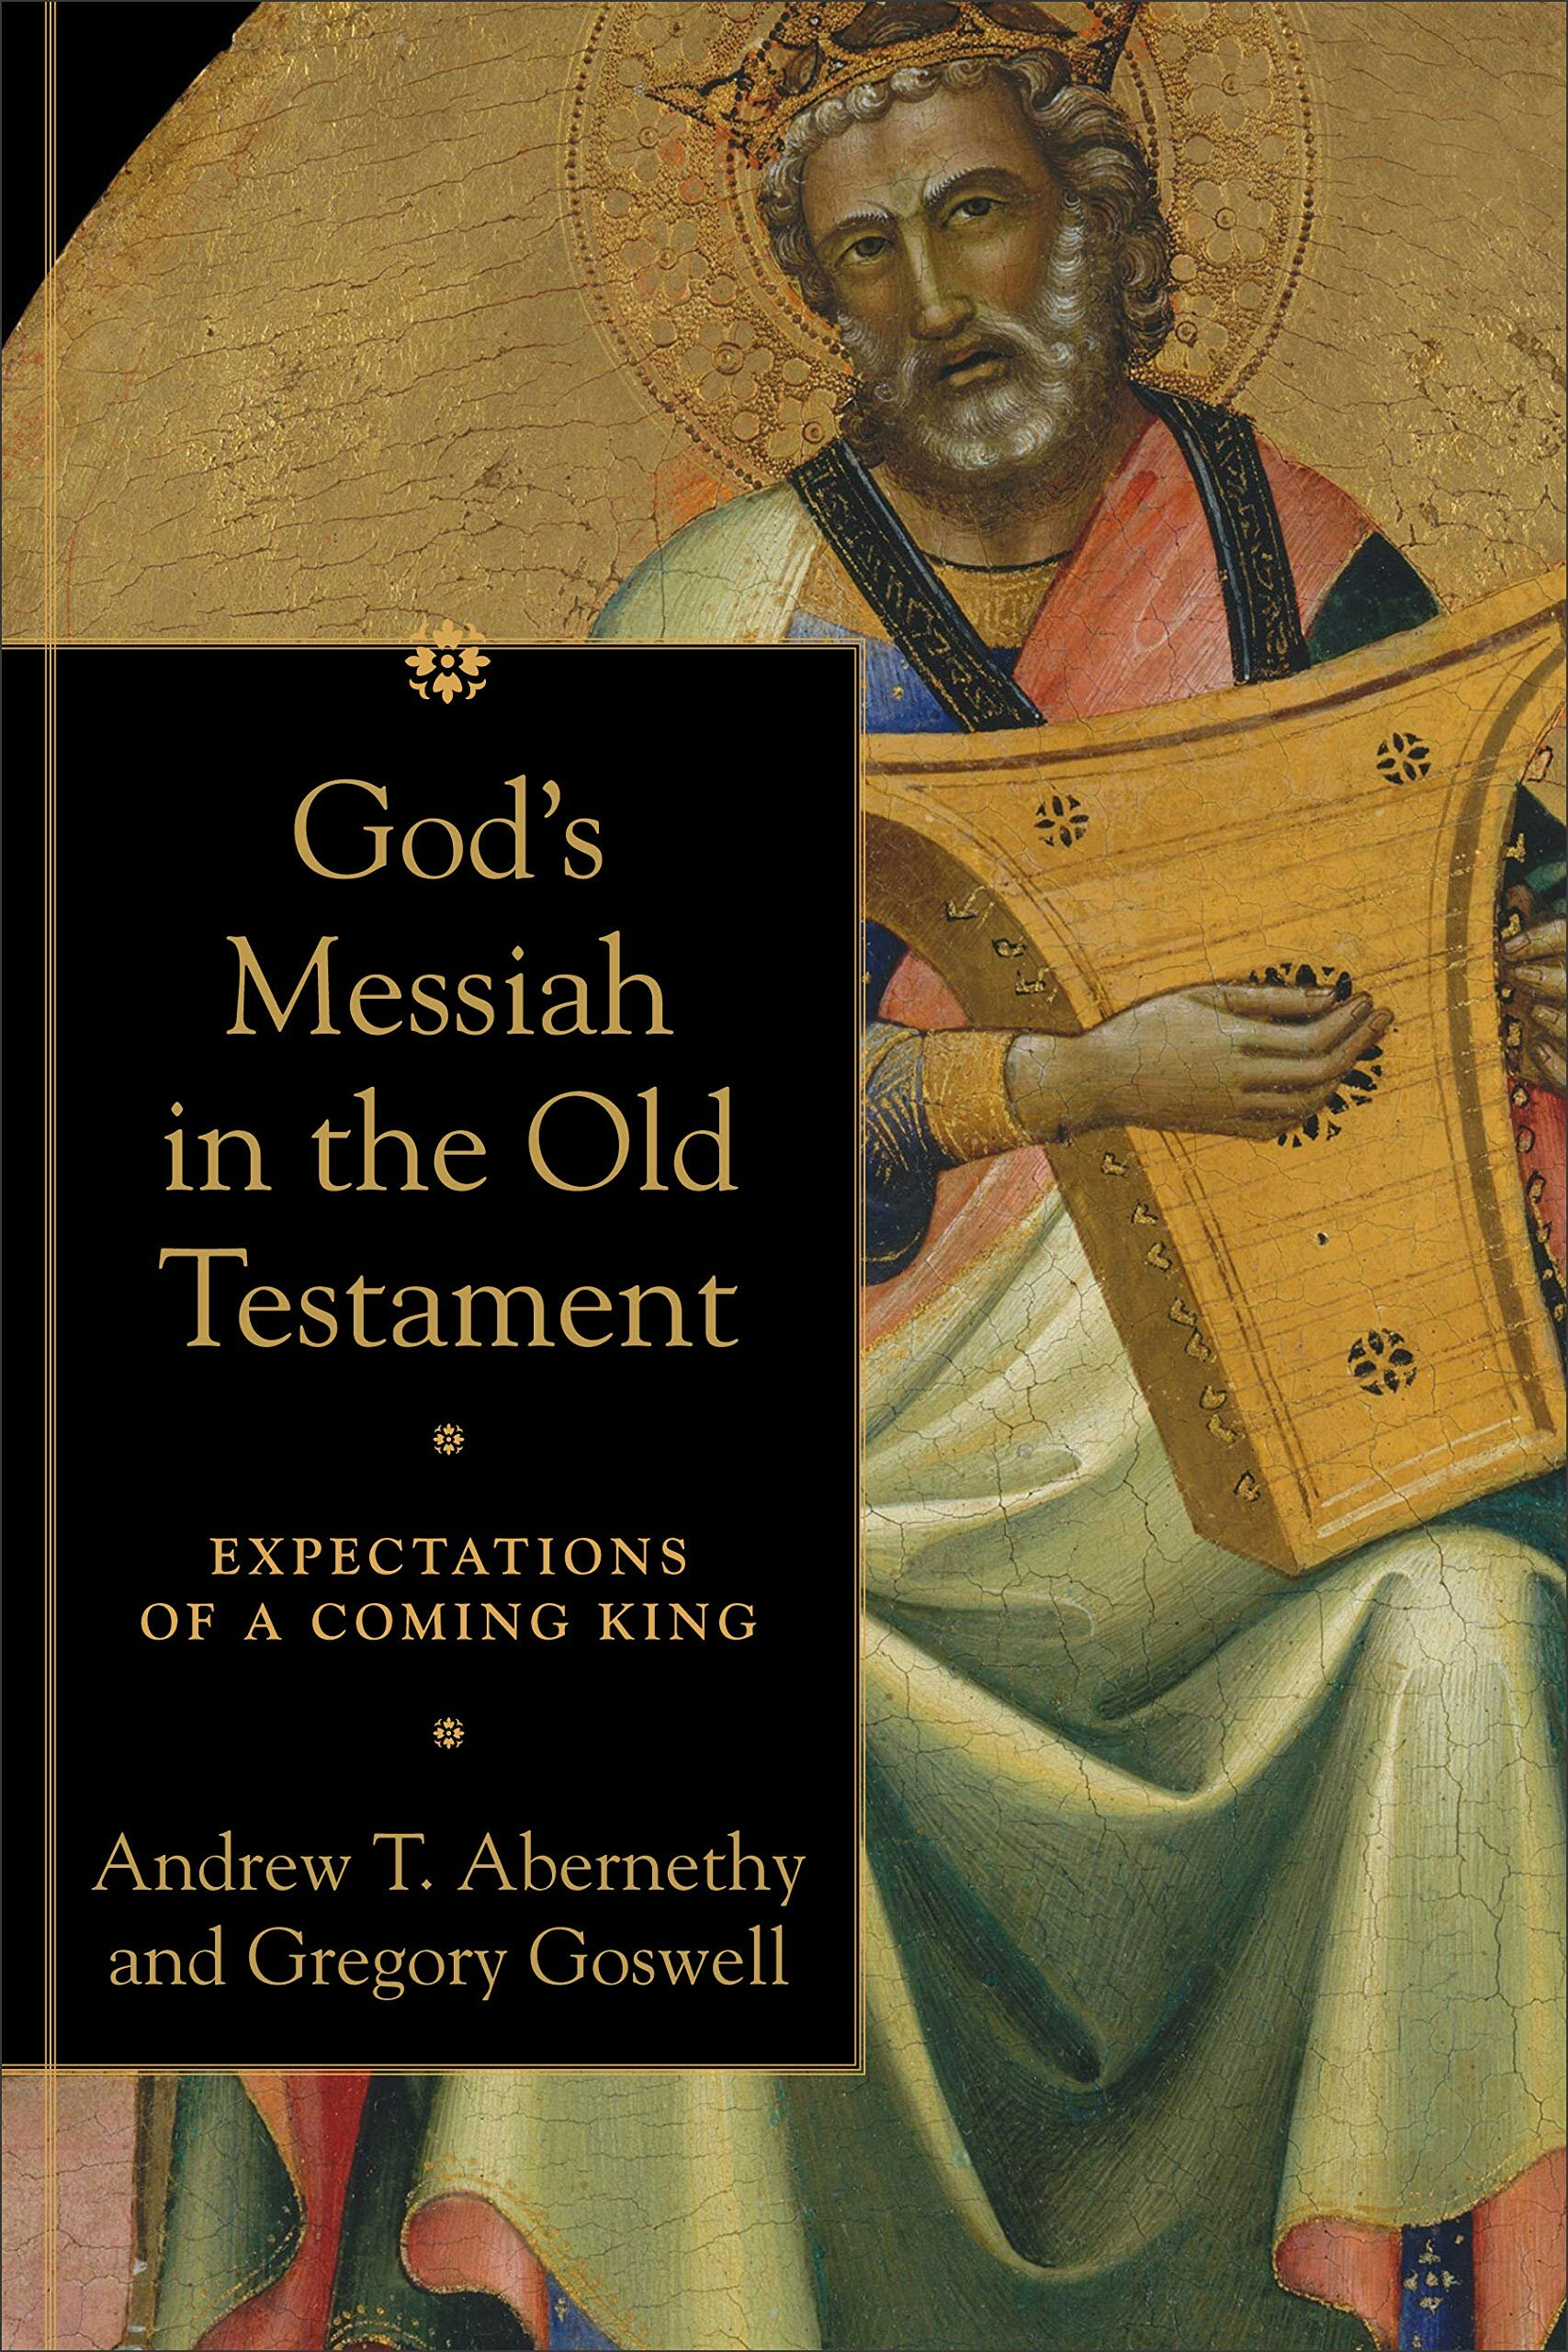 God's Messiah in the Old Testament: Expectations of a Coming King